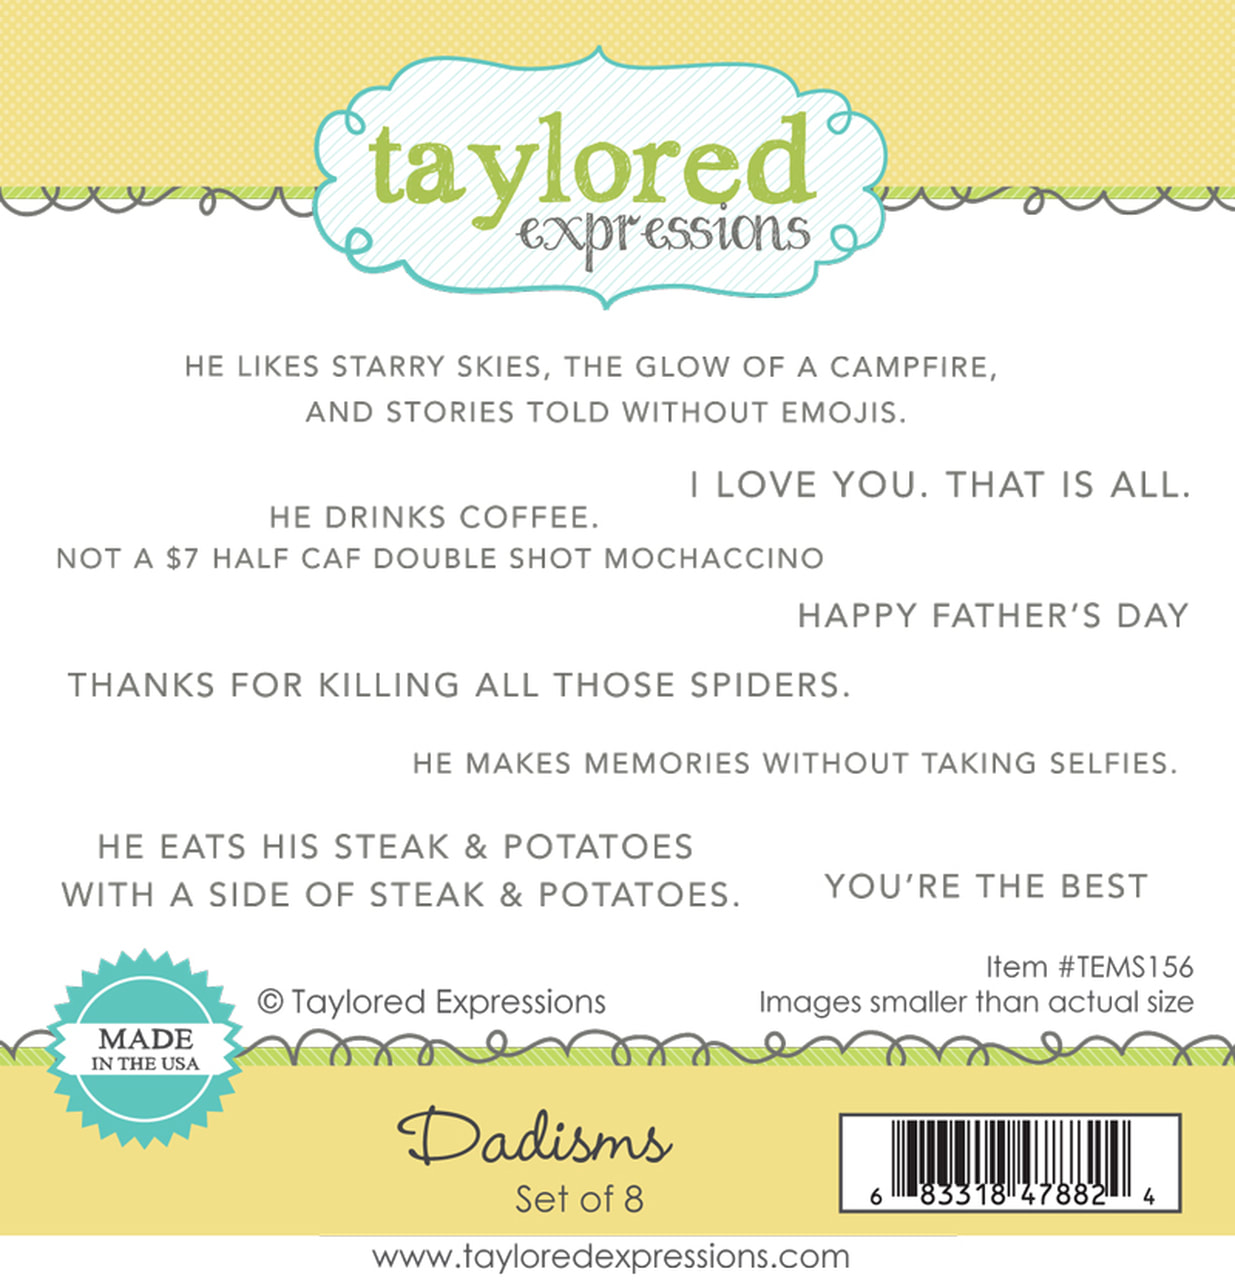 Taylored Expressions - Dadisms Stamp Set